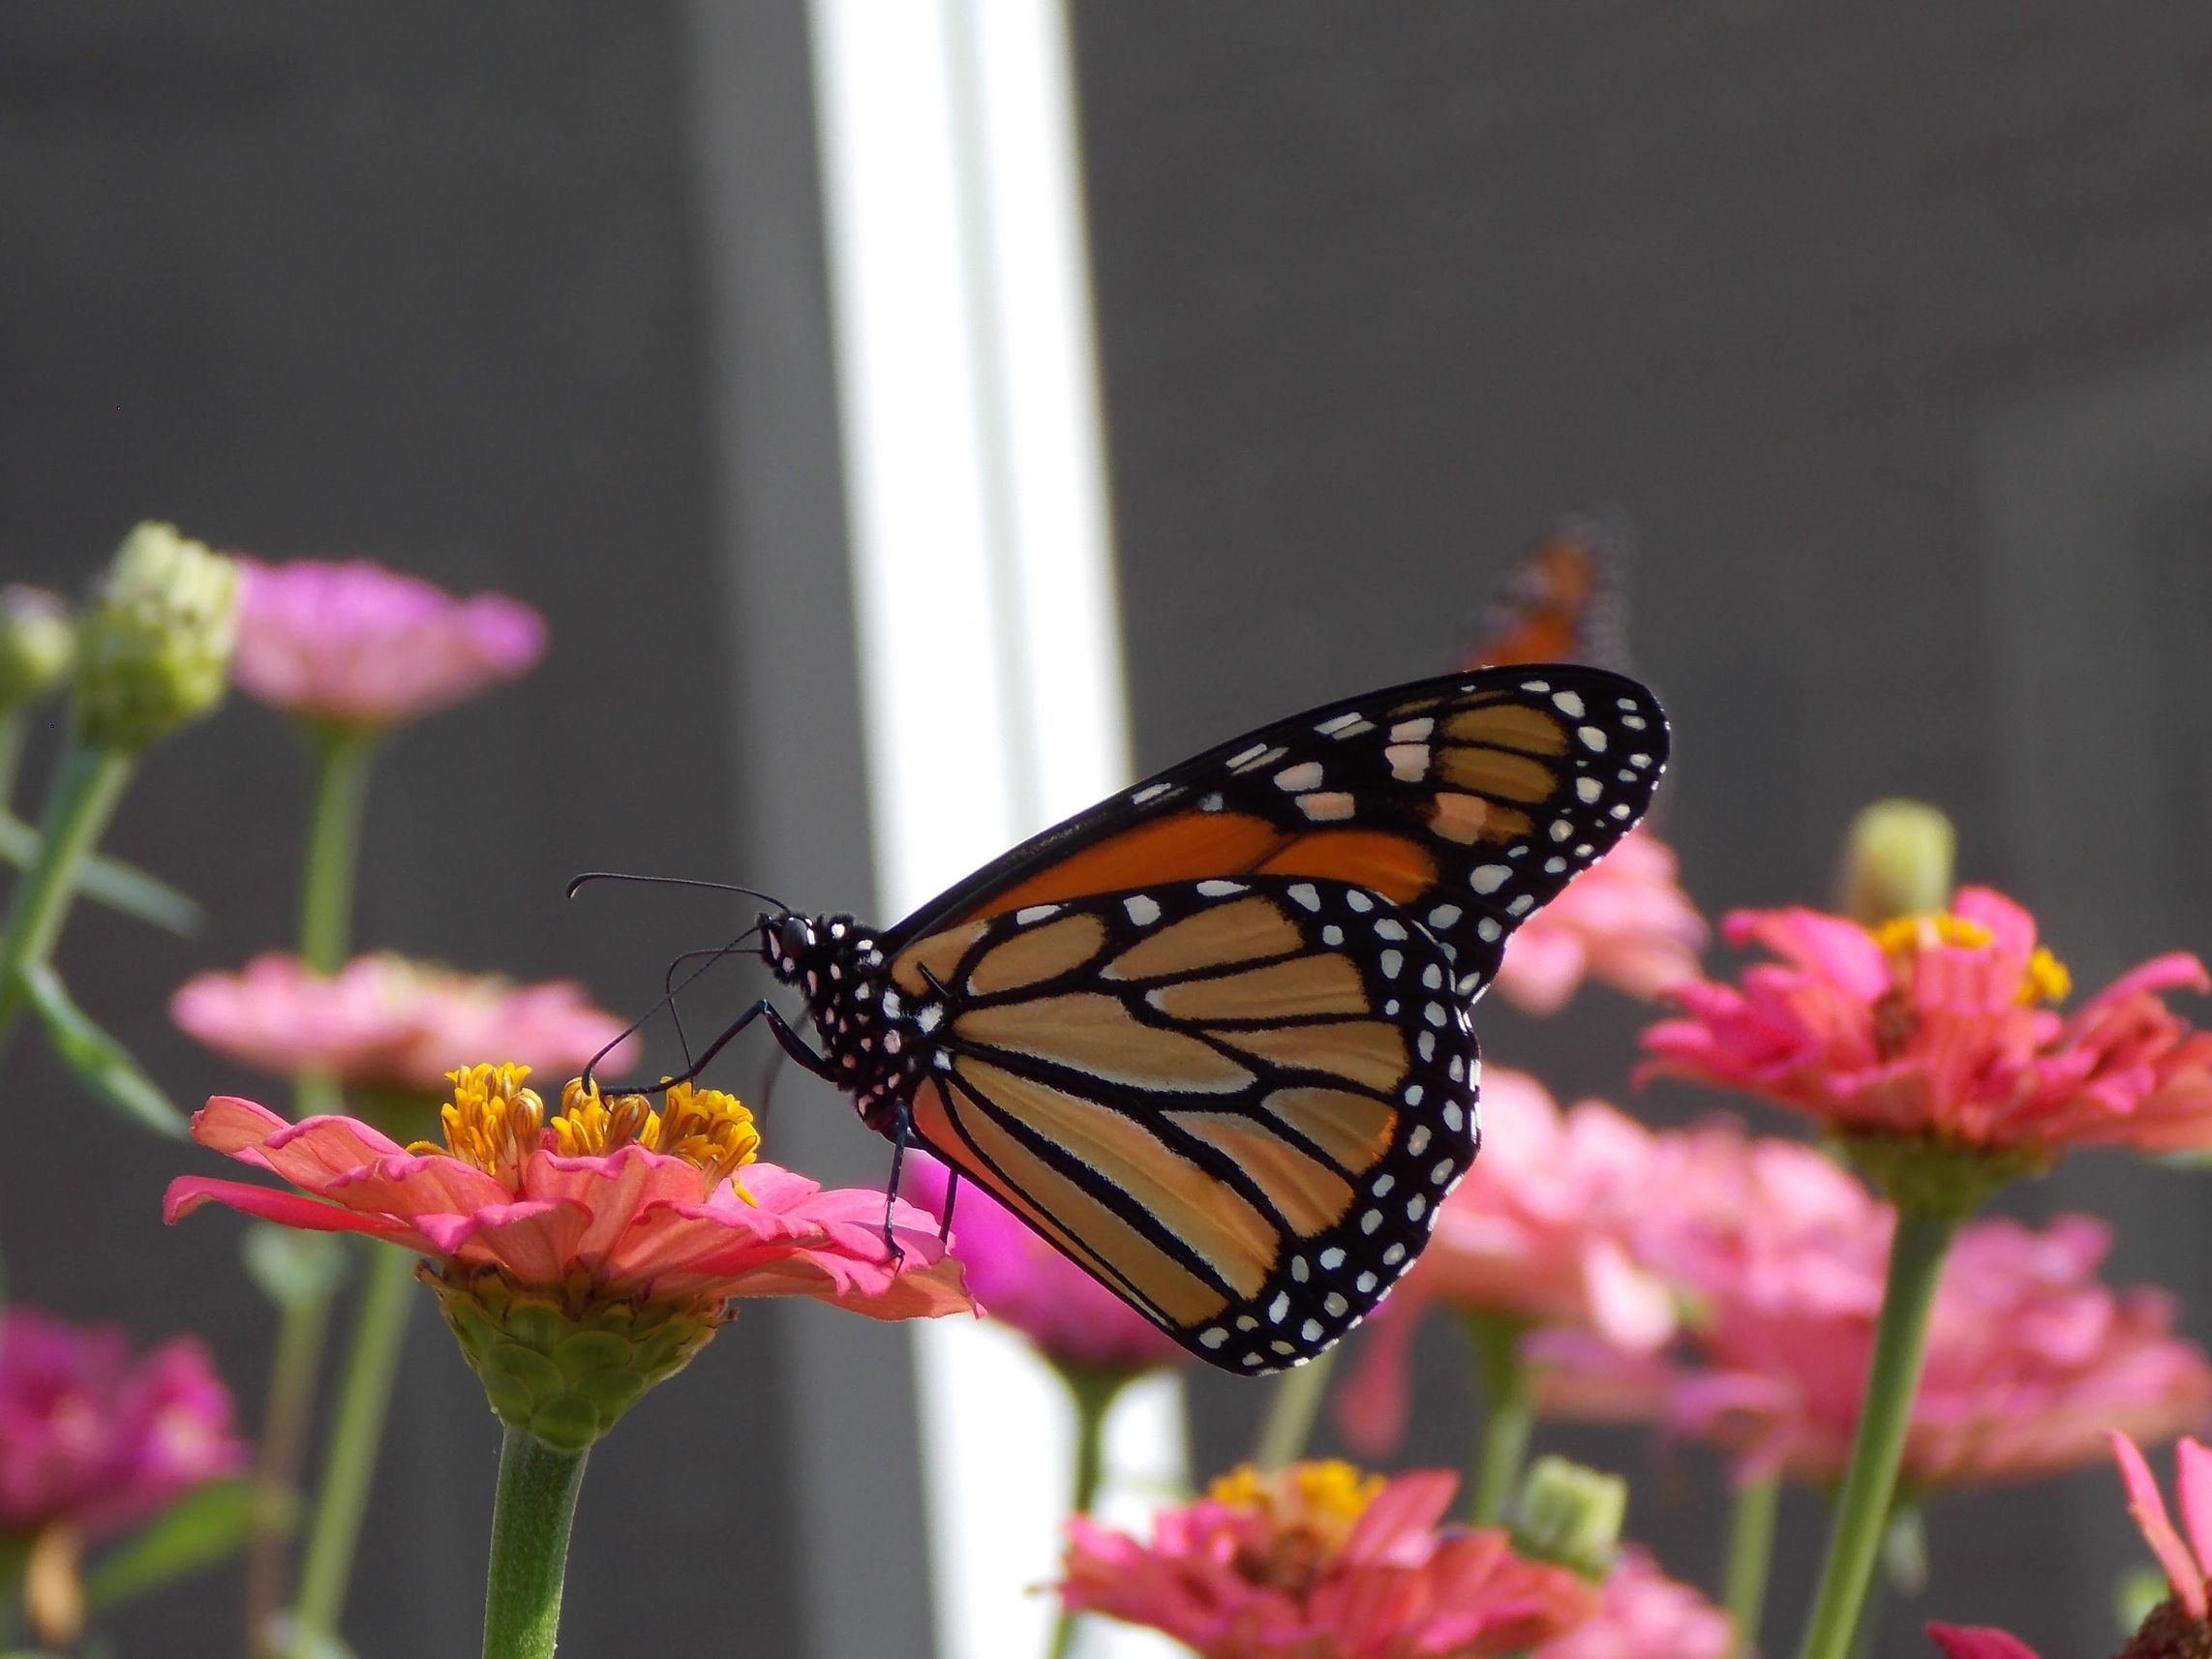 Monarch butterfly is nectaring on a pink zinnia blossom in a backyard garden.